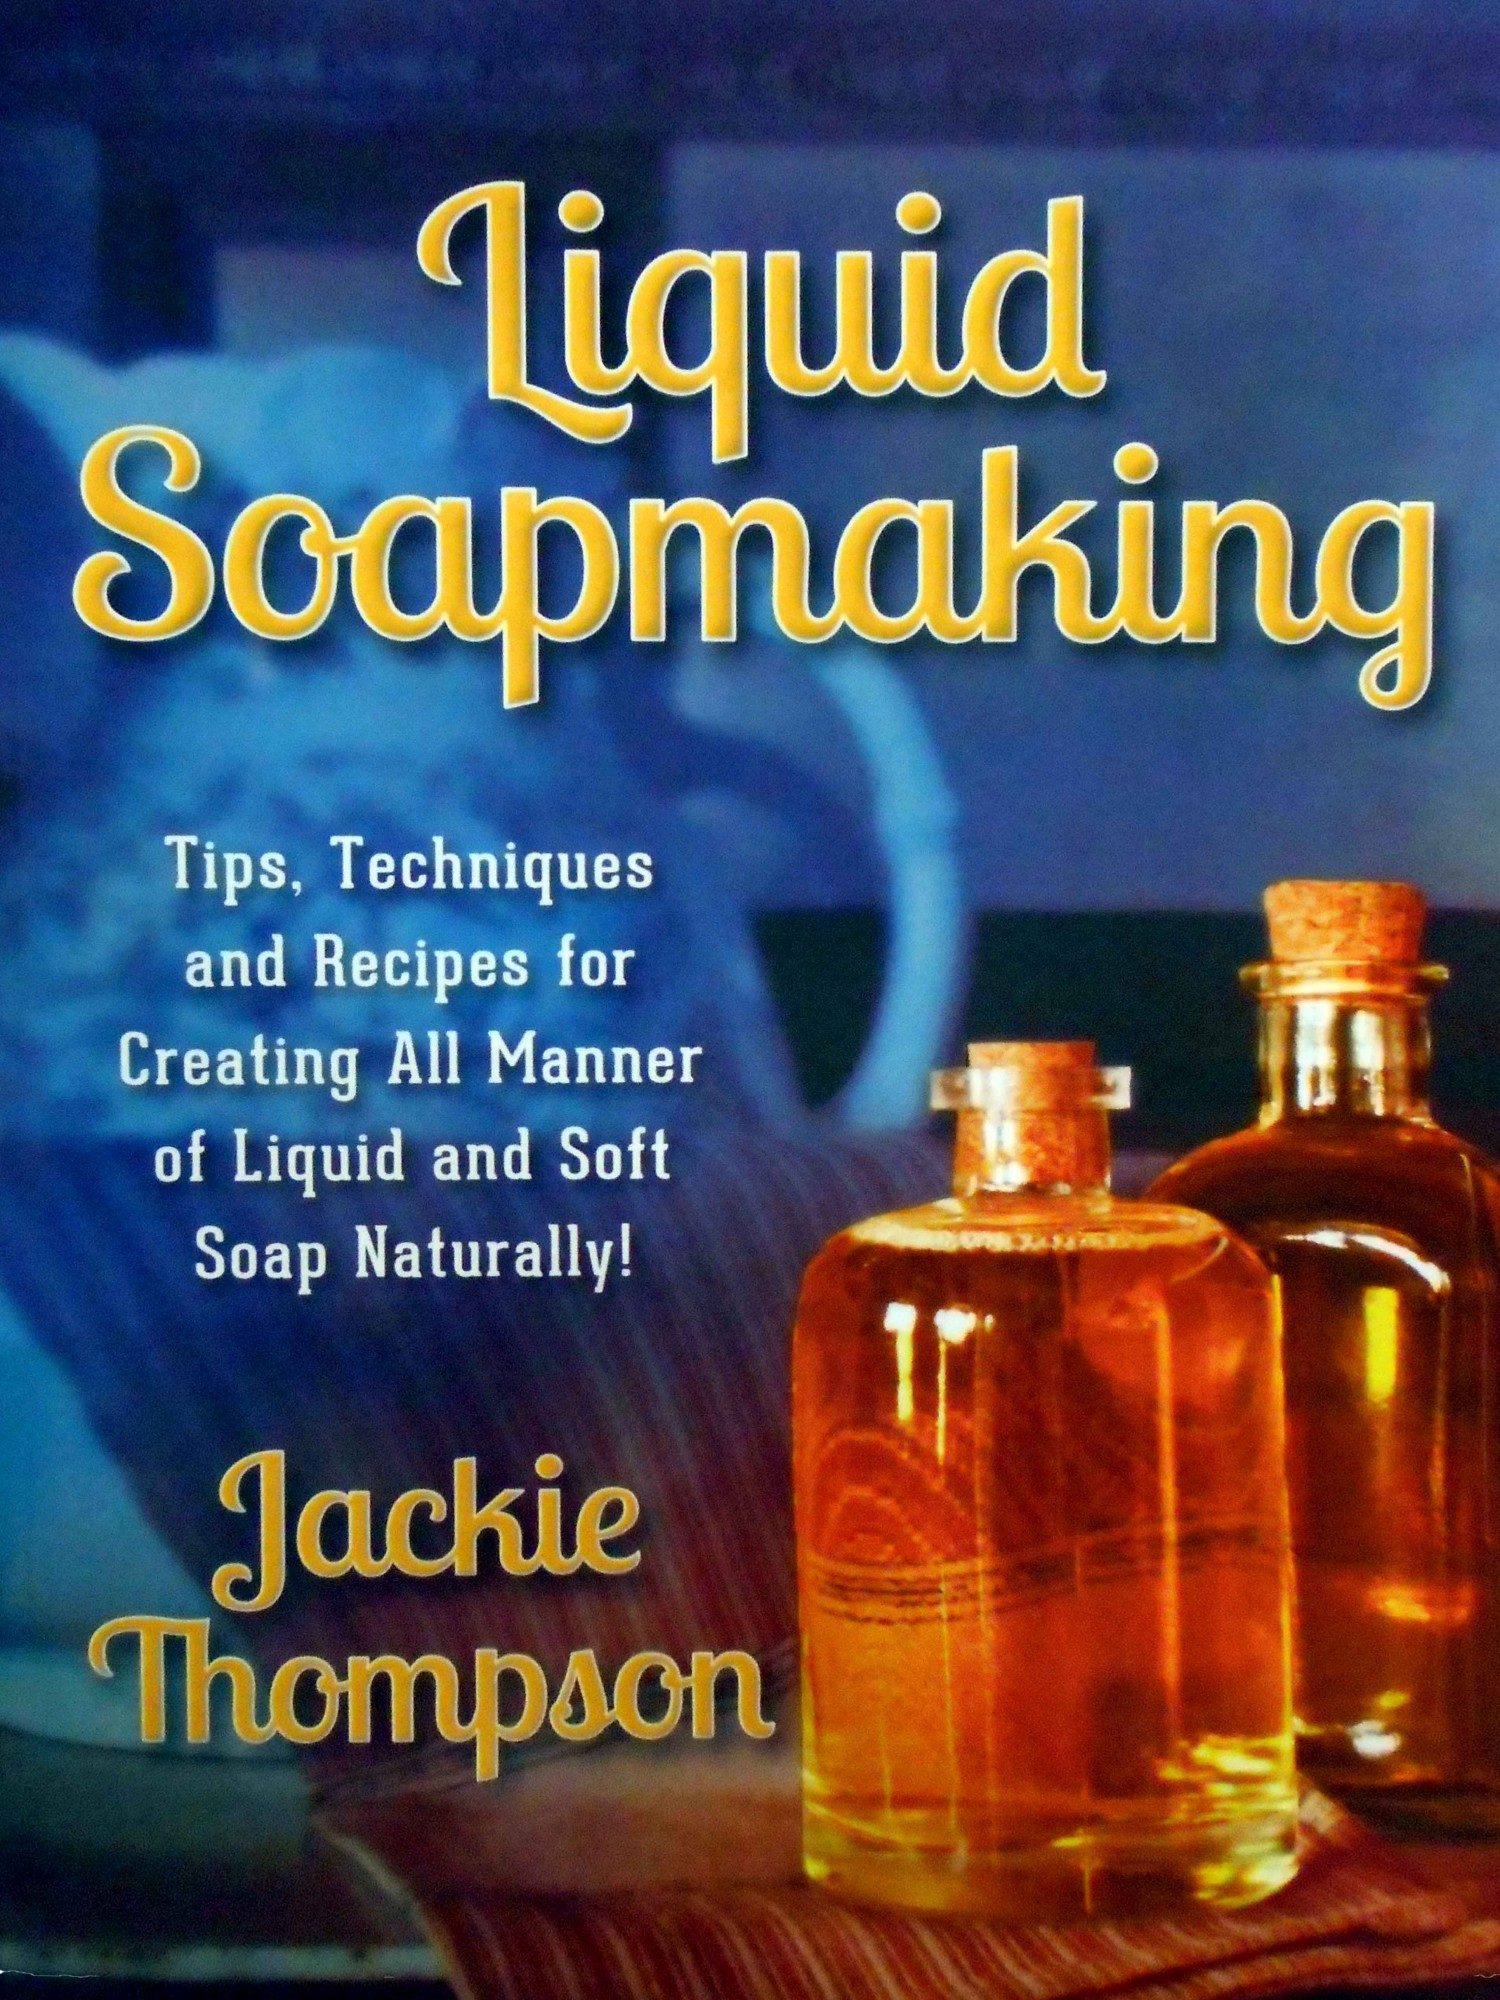 liquid-soap-jackie